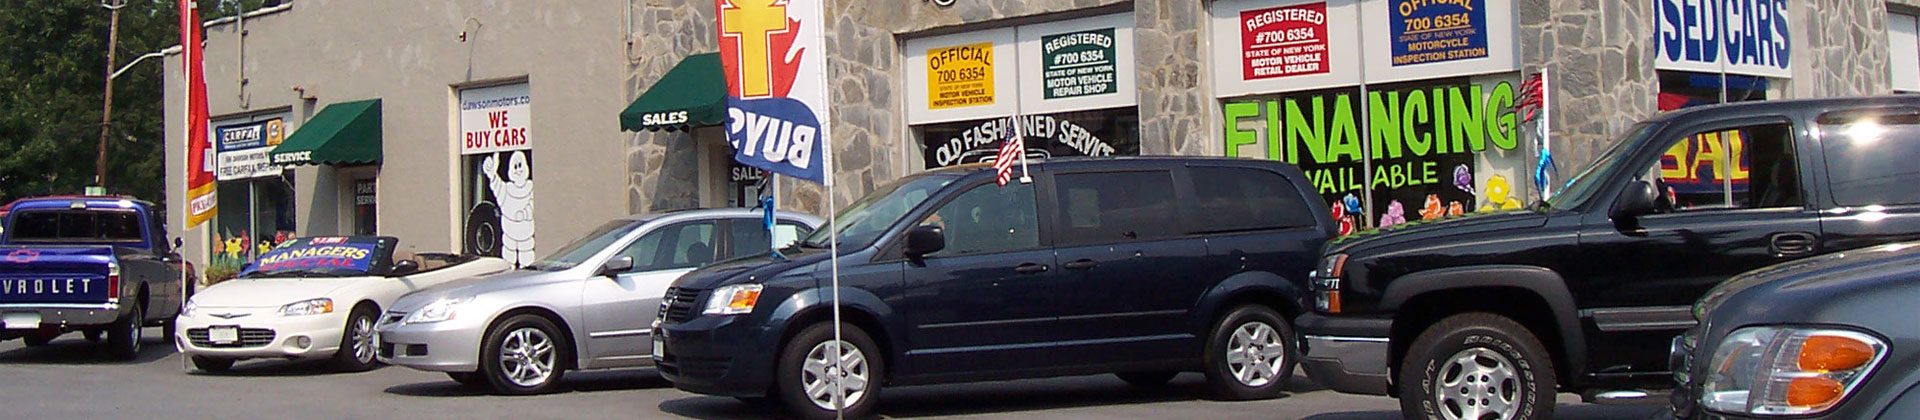 Used Cars for Sale in Warwick, NY | Cars in Orange County NY ...